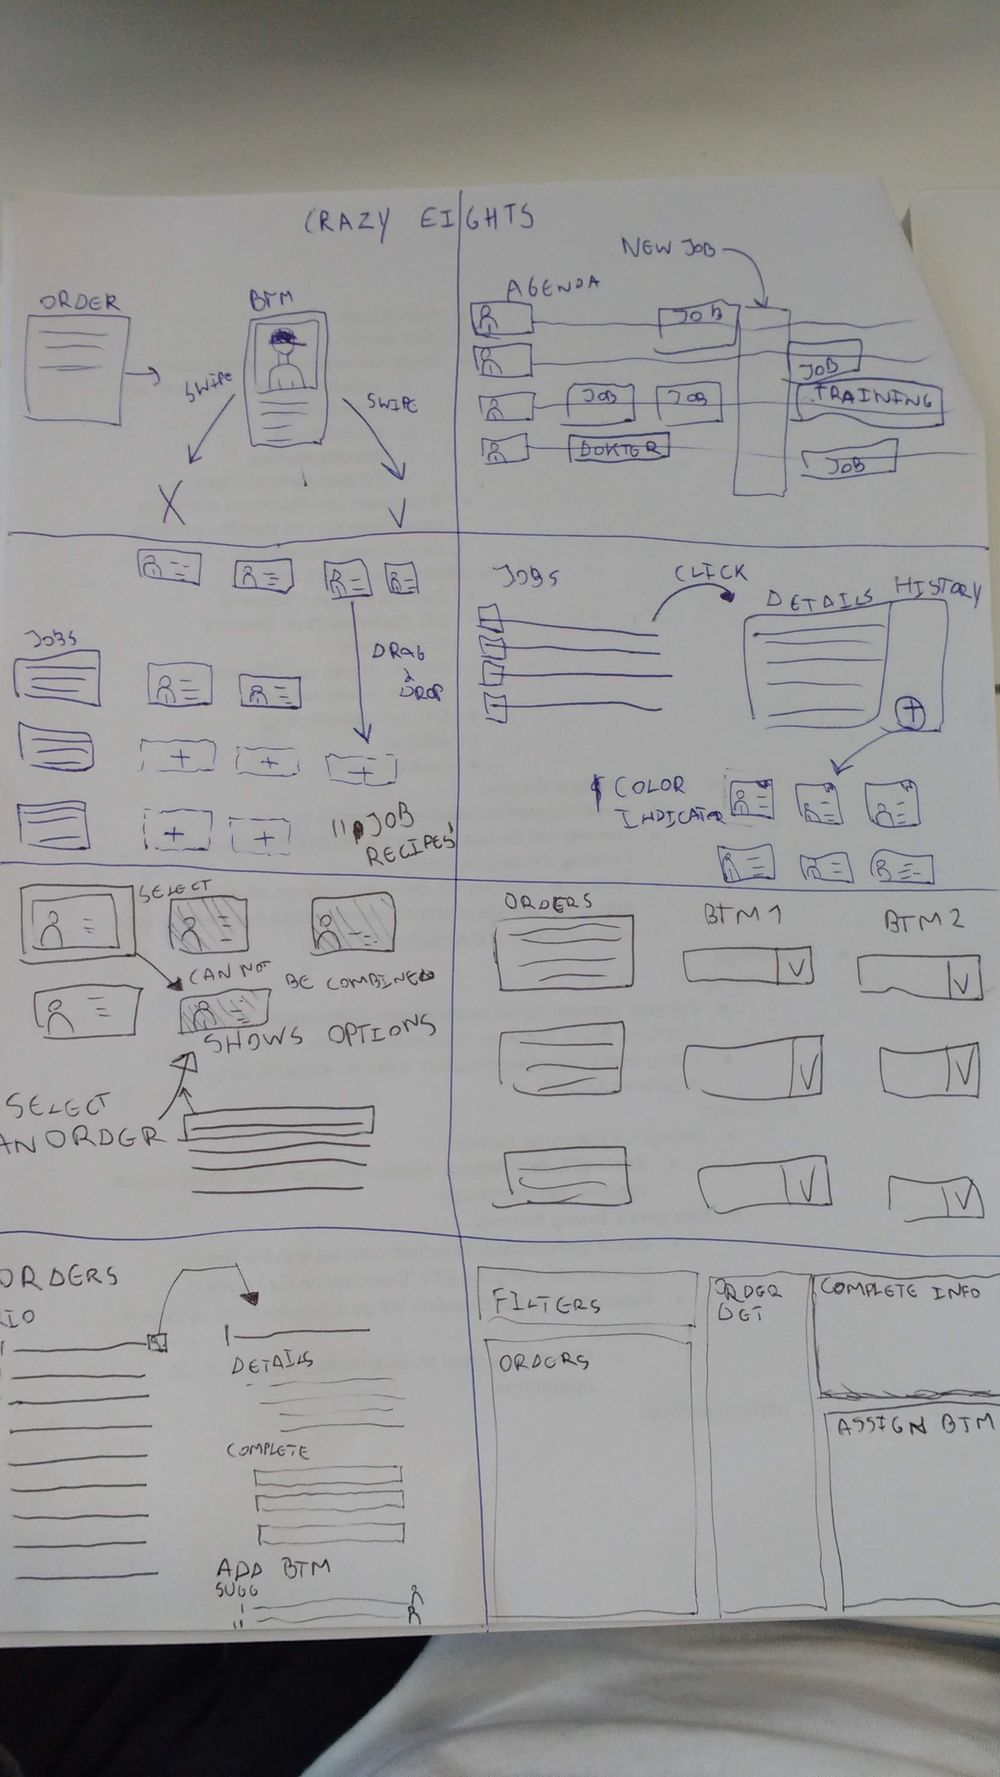 Planning interface - image 2 - student project